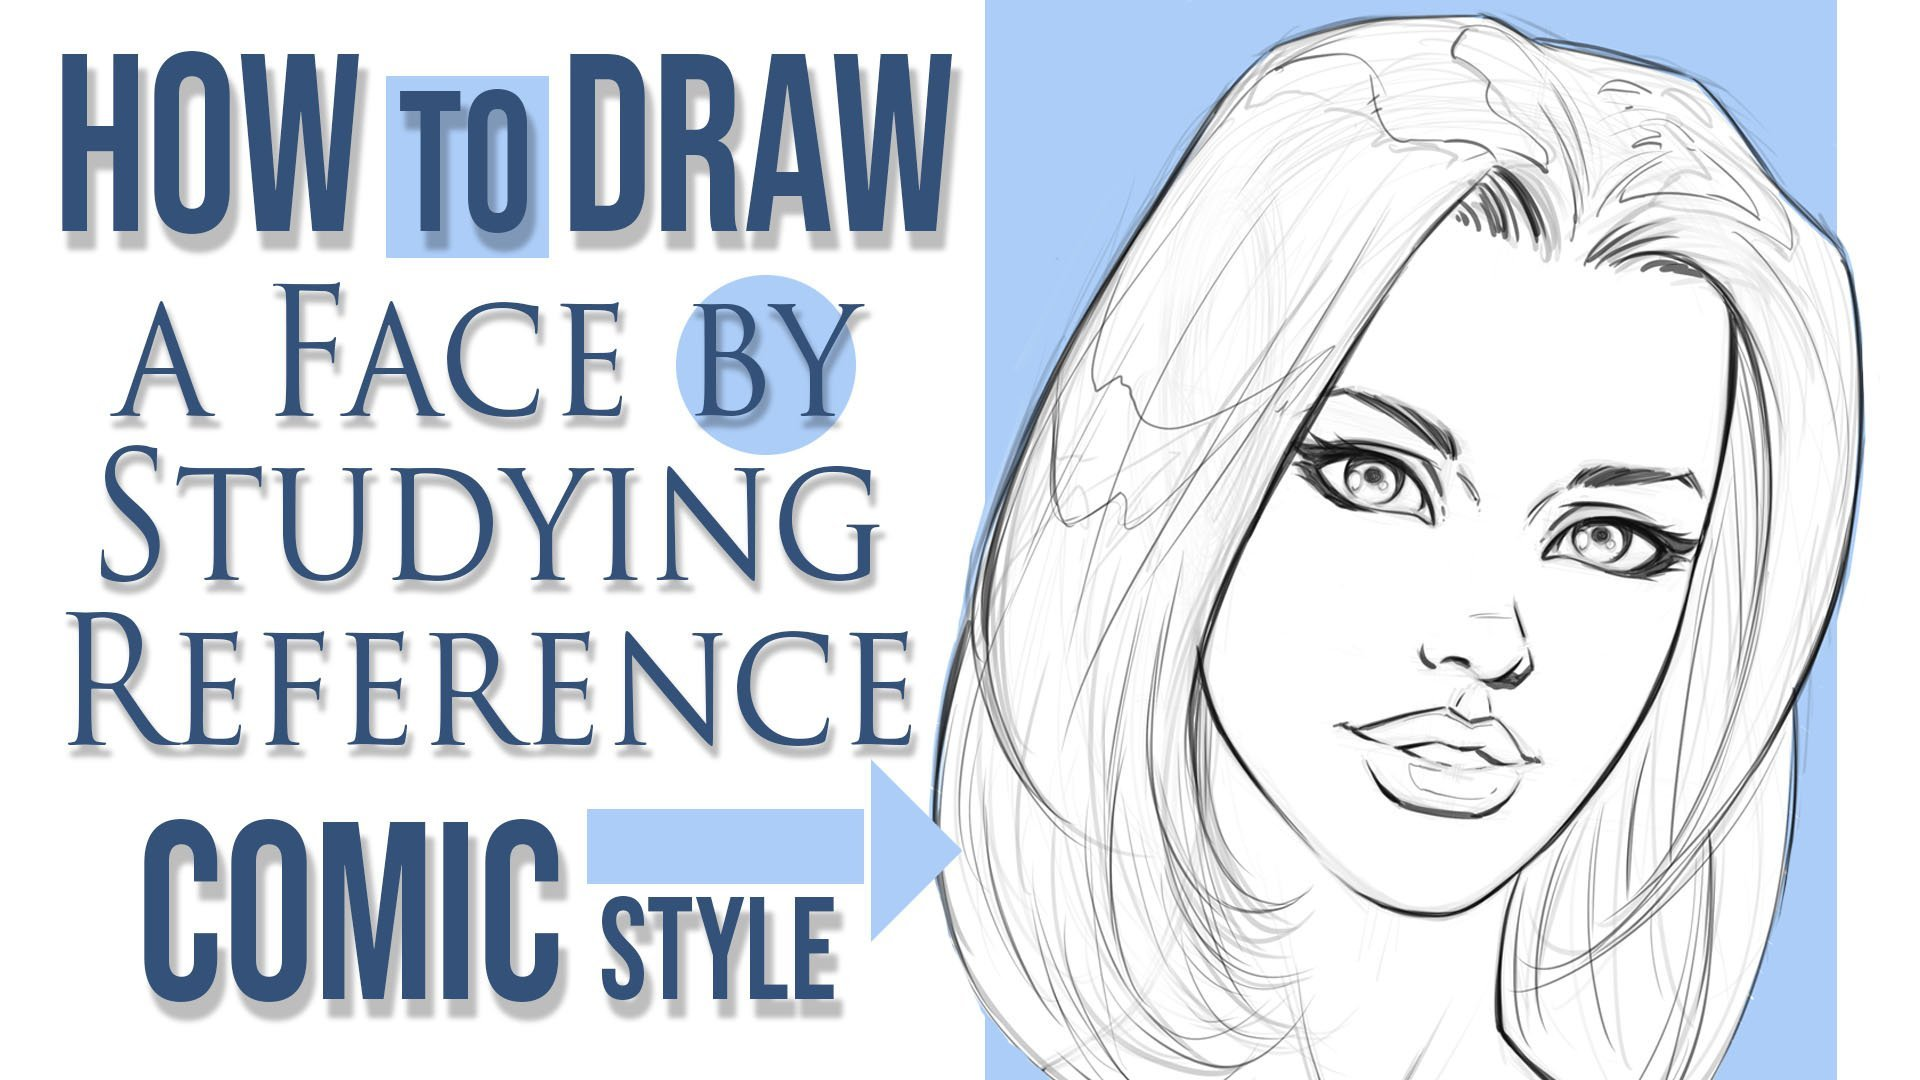 How to Draw a Face by Studying Reference in a Comic Style  Robert